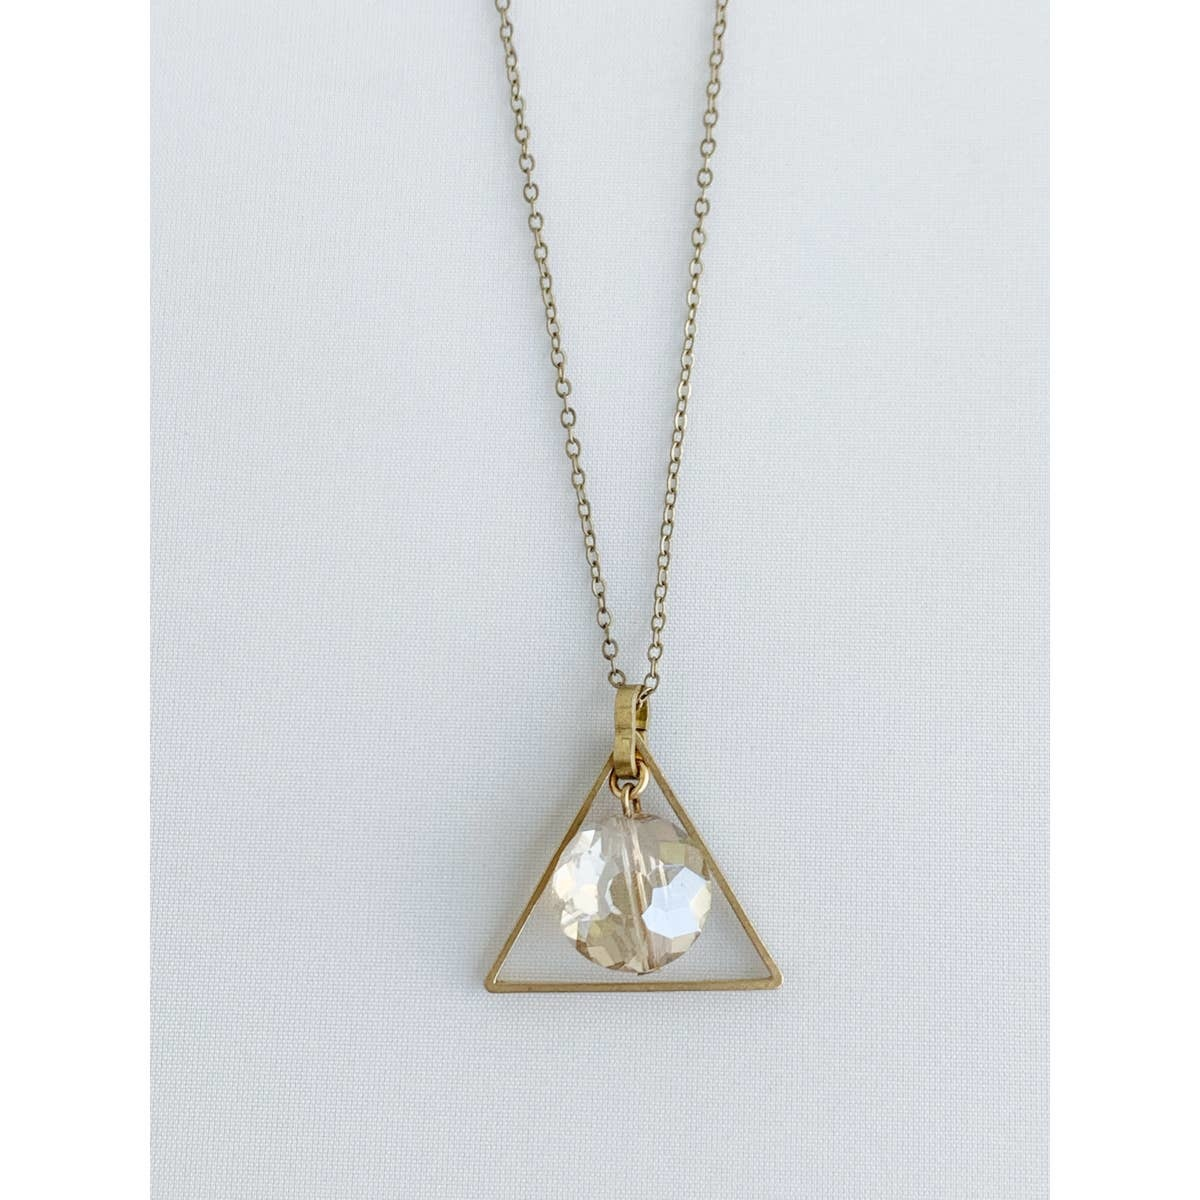 Bou-Cou Triangle w/ Crystal Center Necklace